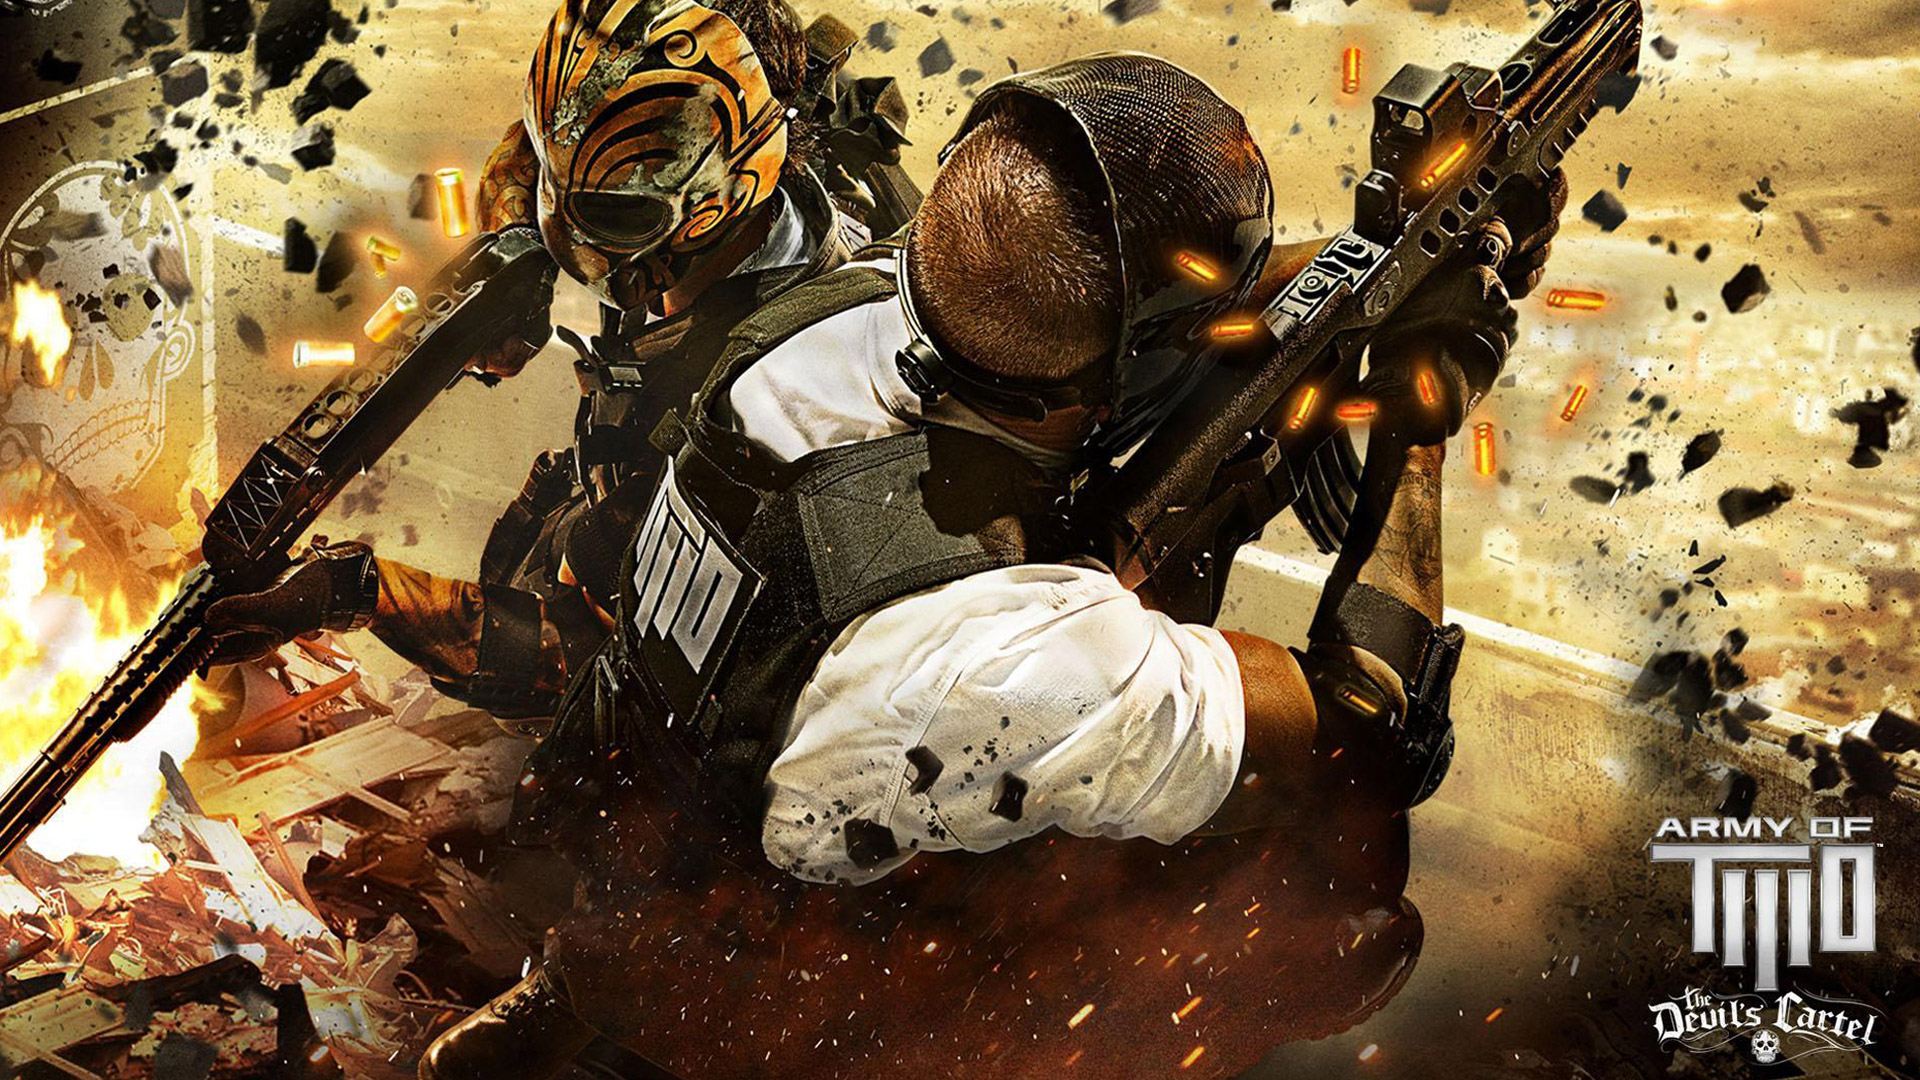 Army of Two Devils Cartel wallpaper 2